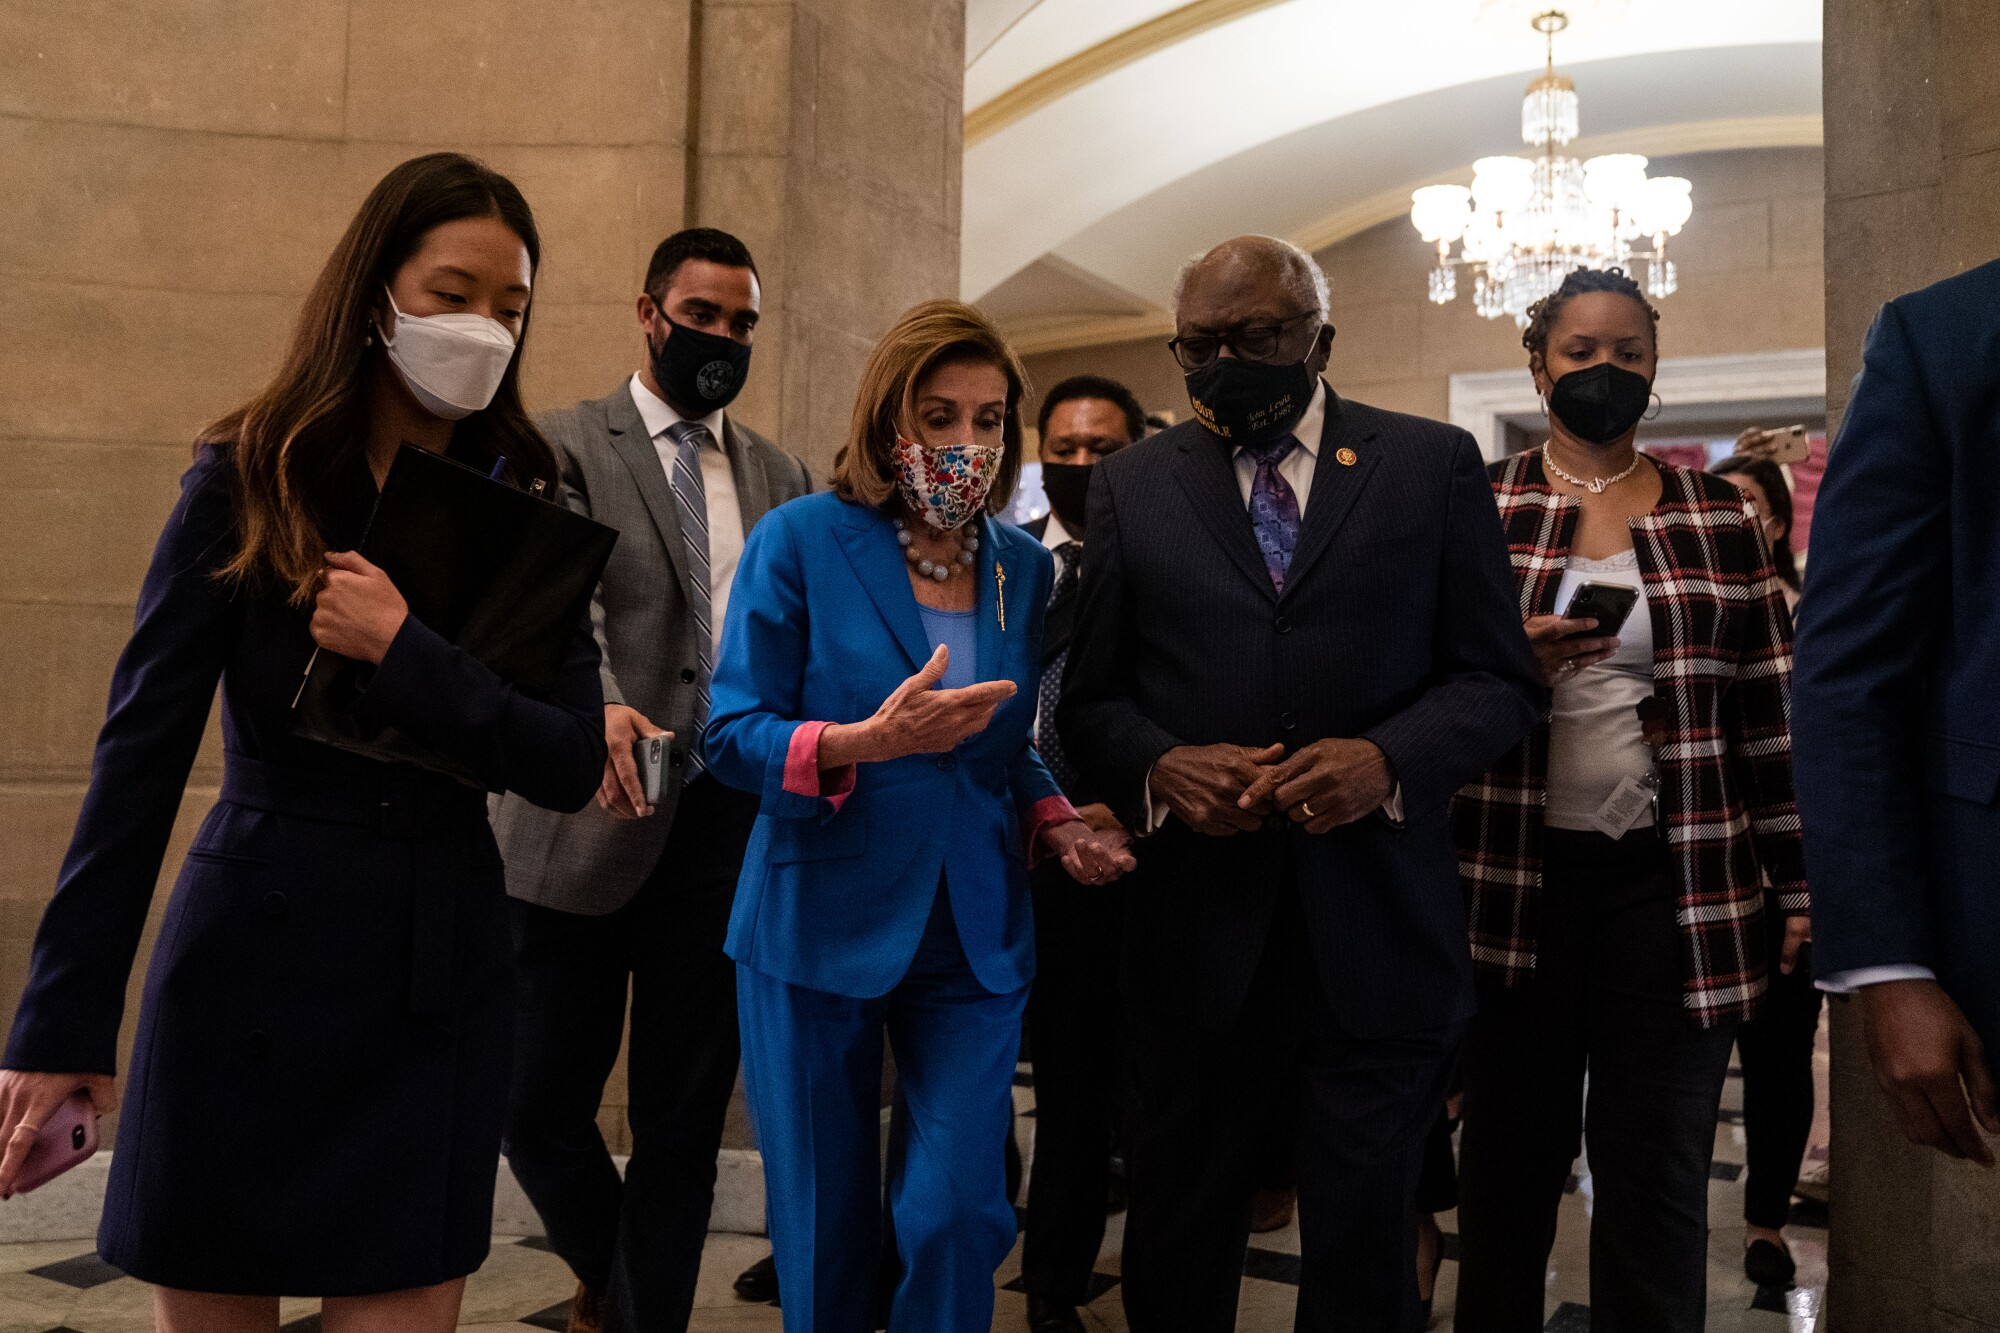 Nancy Pelosi, James Clyburn and others walk through the halls of the Capitol